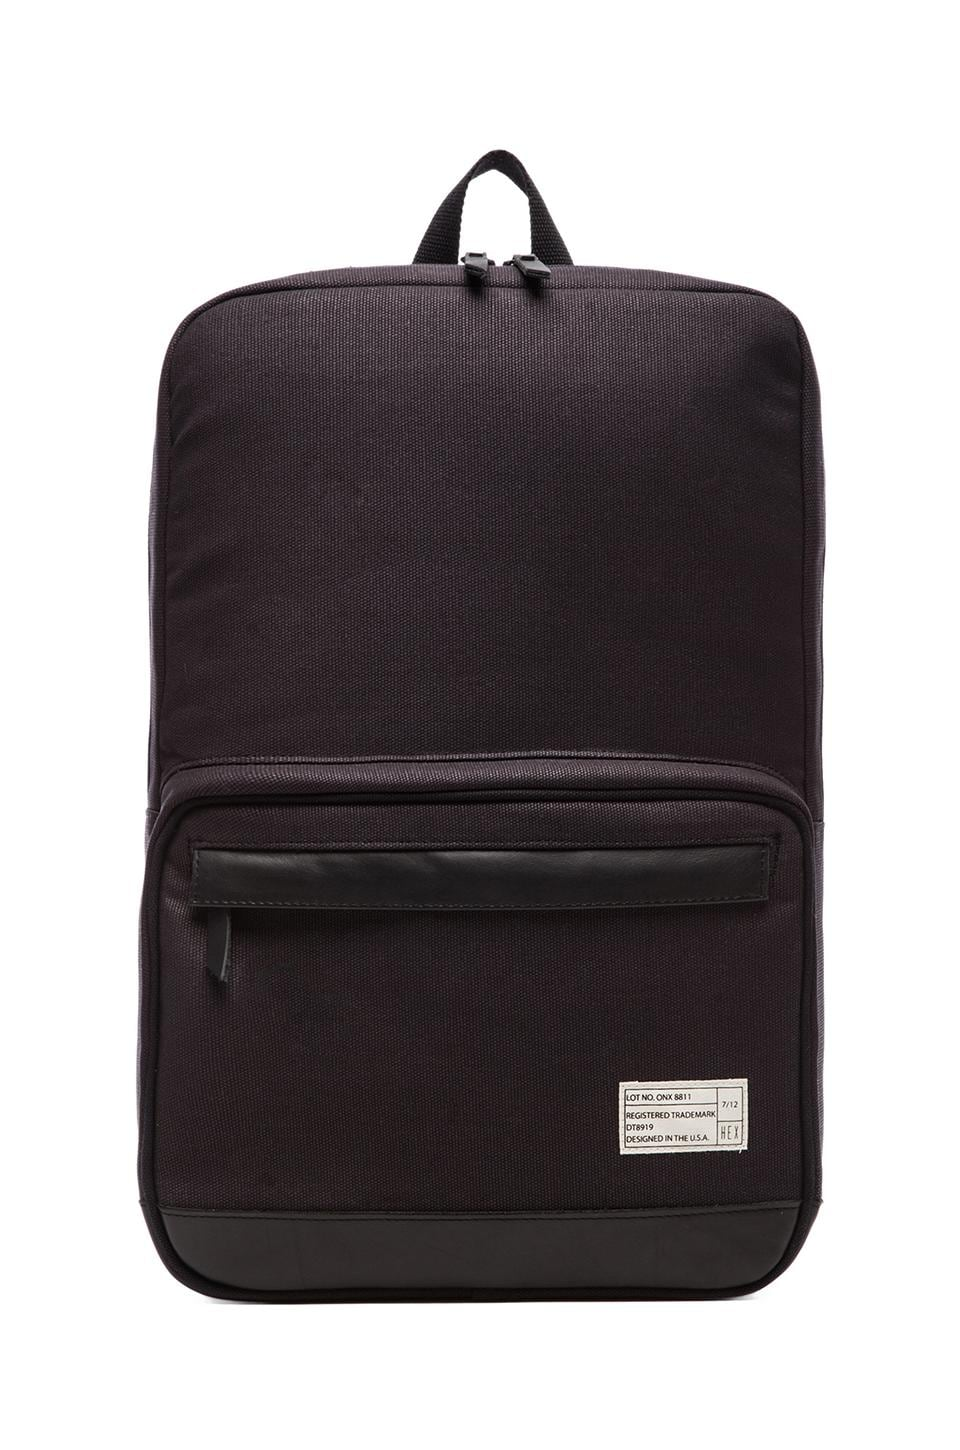 HEX Origin Backpack in Black